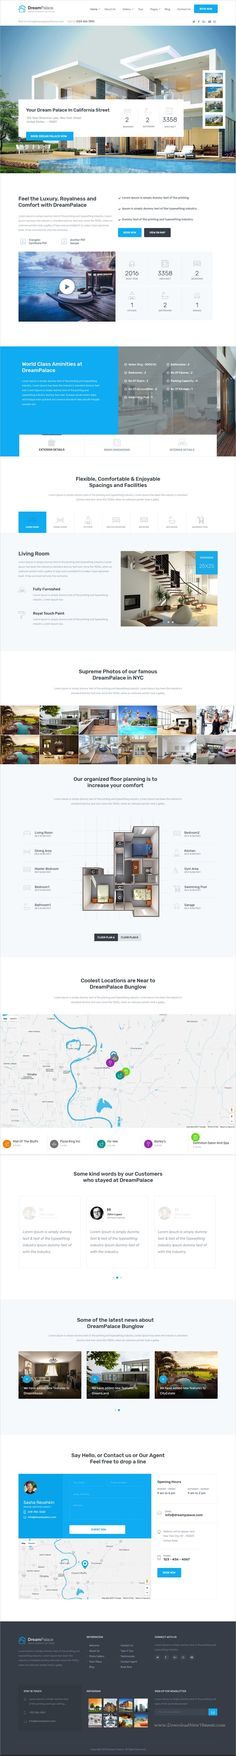 Buy DreamPalace - Single Property Real Estate Theme by fortunecreations on ThemeForest. DreamPalace is Single Property Real Estate WordPress Theme build using Visual Composer. Website Design Layout, Web Layout, Layout Design, Beautiful Web Design, Best Web Design, Property Real Estate, Real Estate Companies, Site Vitrine, Design Inspiration